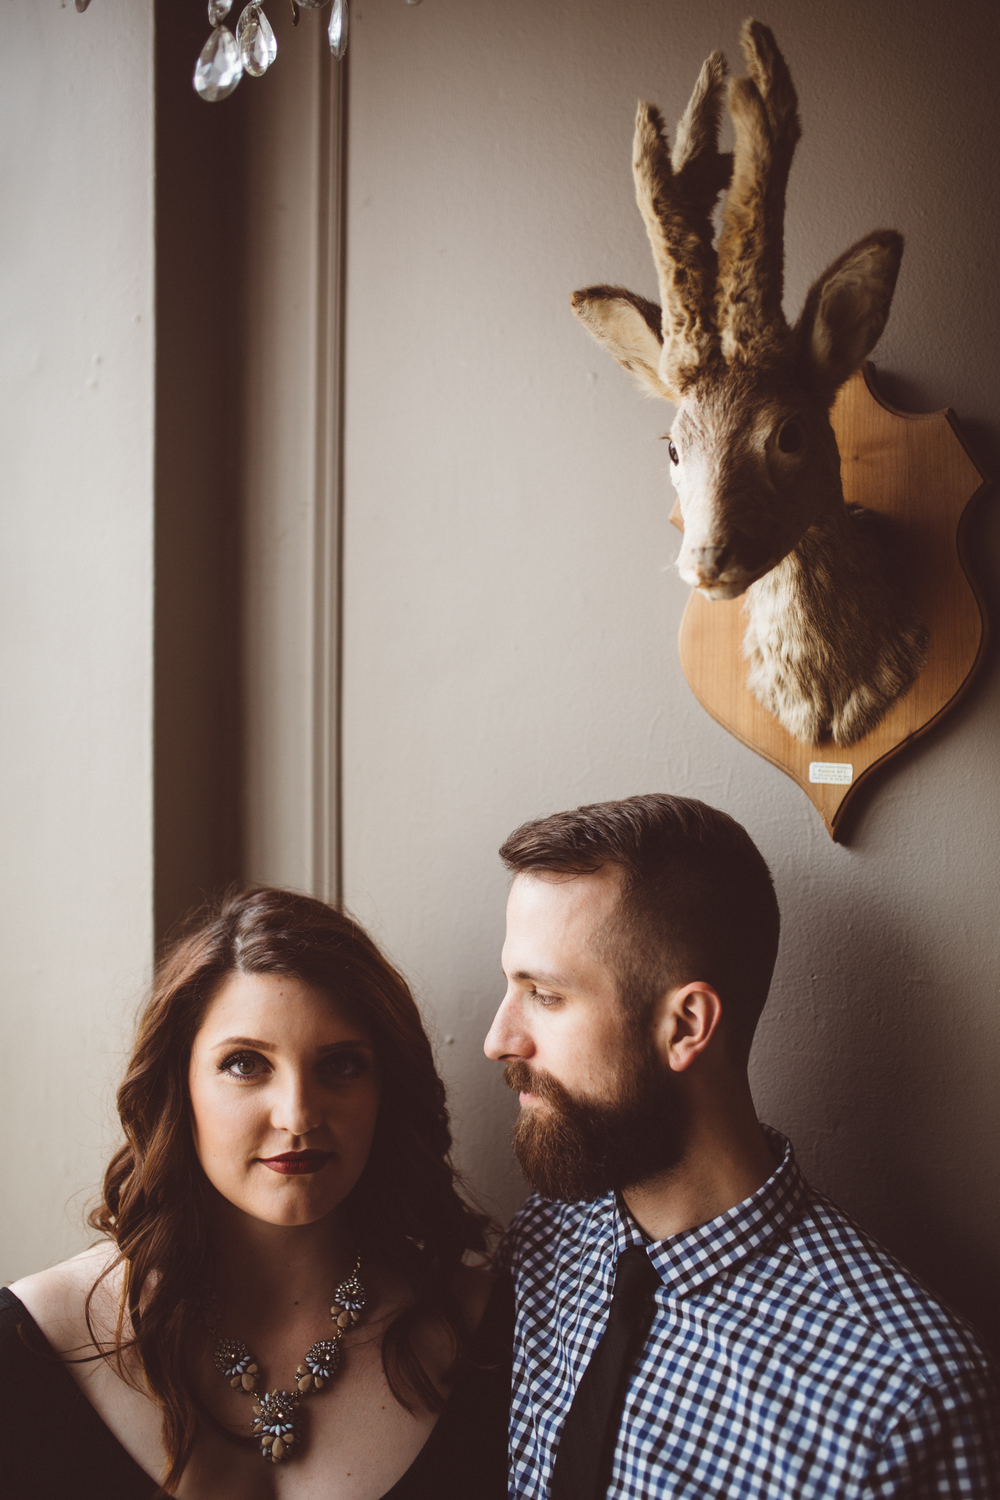 KDP_LG&Logan_engagements-49.JPG